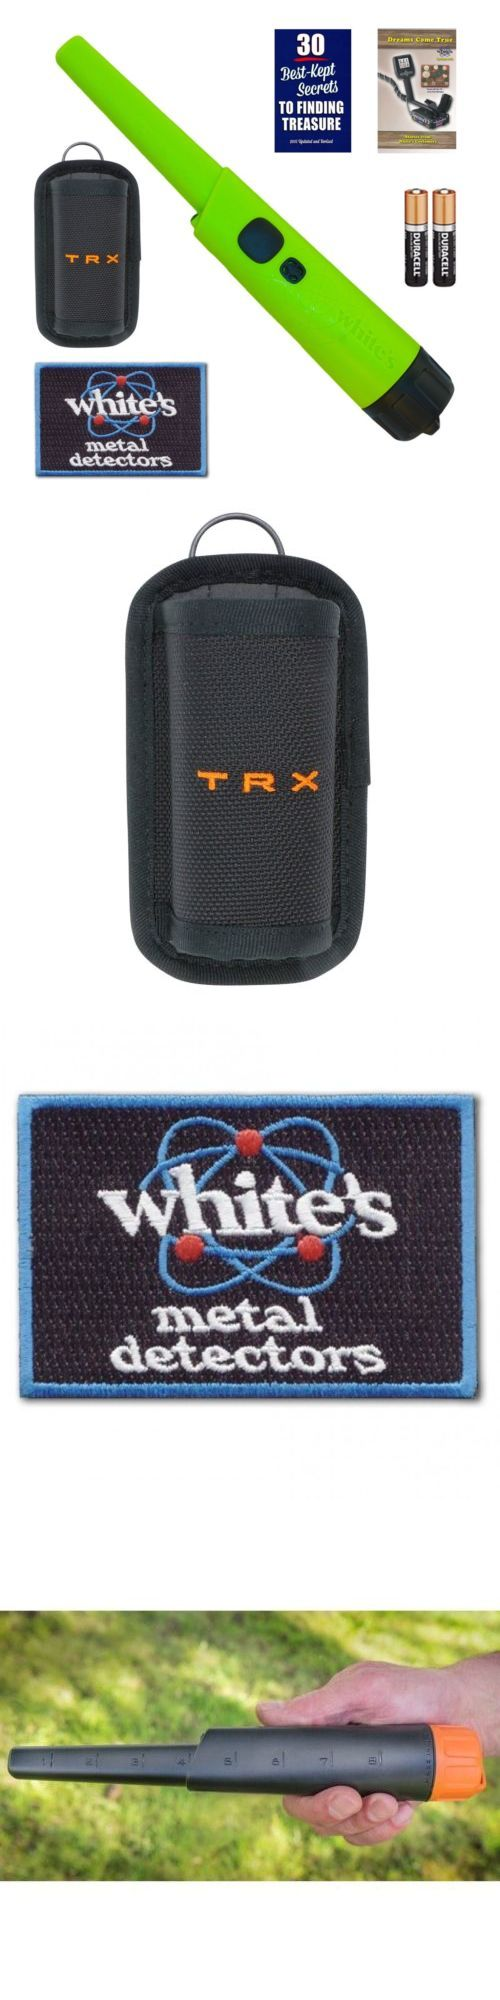 Metal Detectors: Whites Bullseye Trx Pinpointer Pin Pointer Green W Holster And Free Iron-On Patch -> BUY IT NOW ONLY: $149.95 on eBay!